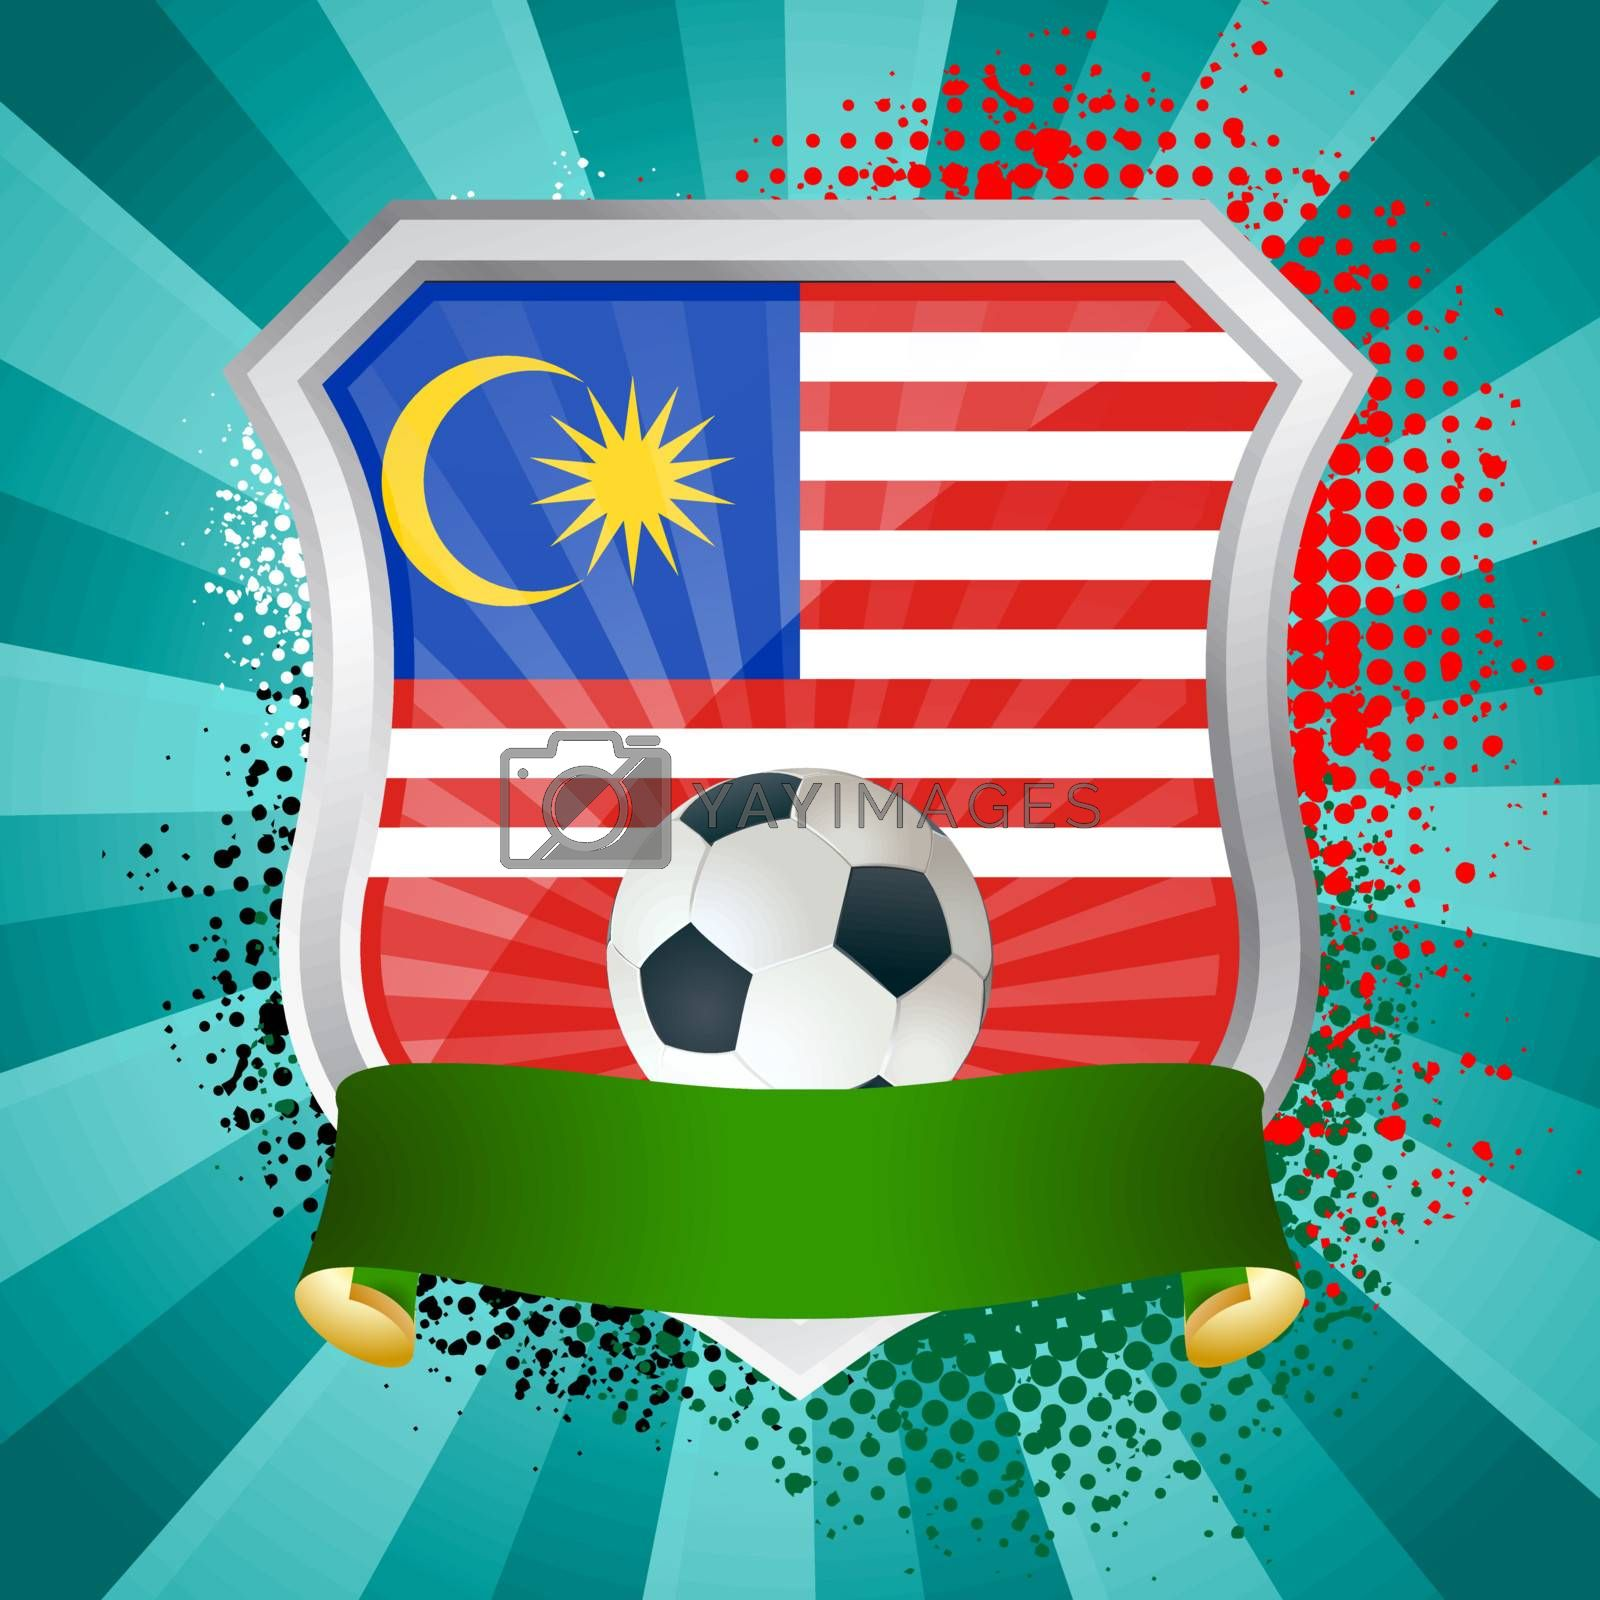 EPS 10. Shiny metal shield on bright background with flag of Malaysia